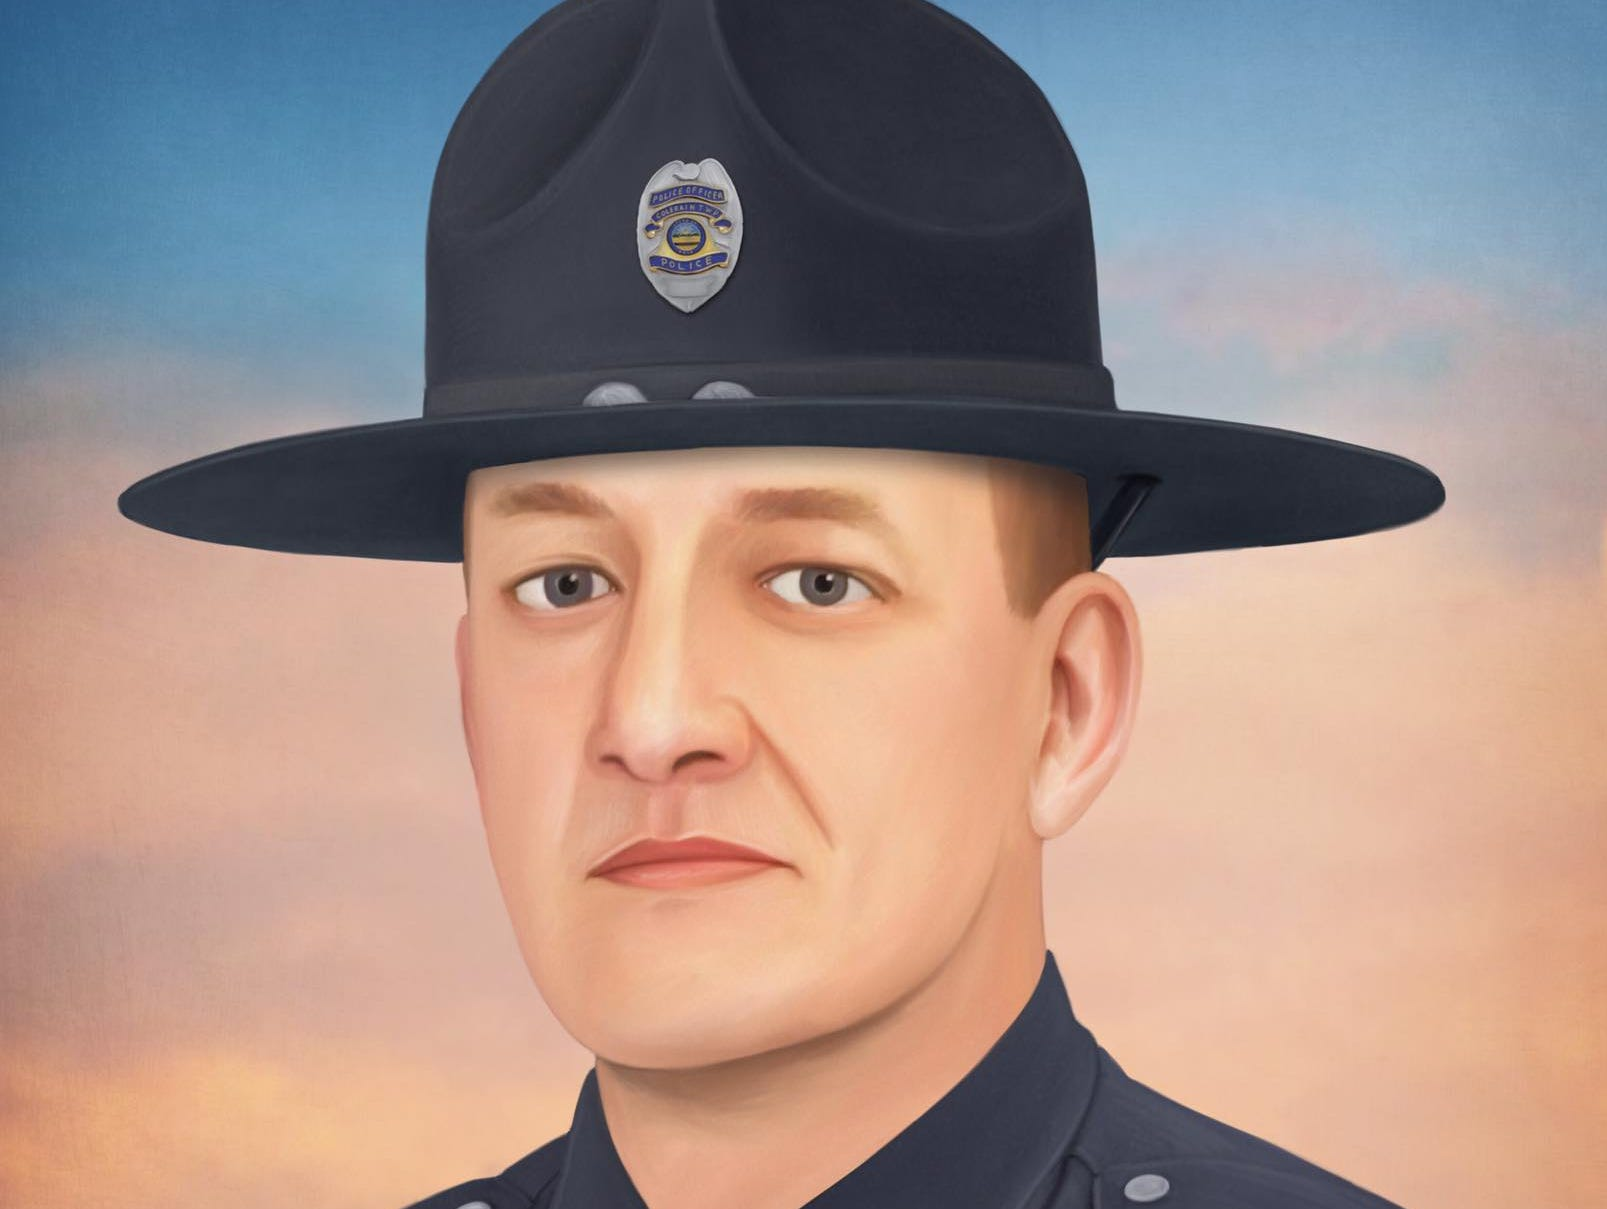 On January 4th, Colerain Township (Ohio) Police Officer Dale Woods was moving traffic control devices on the scene of a previous auto accident when he was struck by an oncoming pickup truck. Dale was transported to the hospital where he fought for 3 days before eventually succumbing to his injuries. Painting by Jonny Castro Art